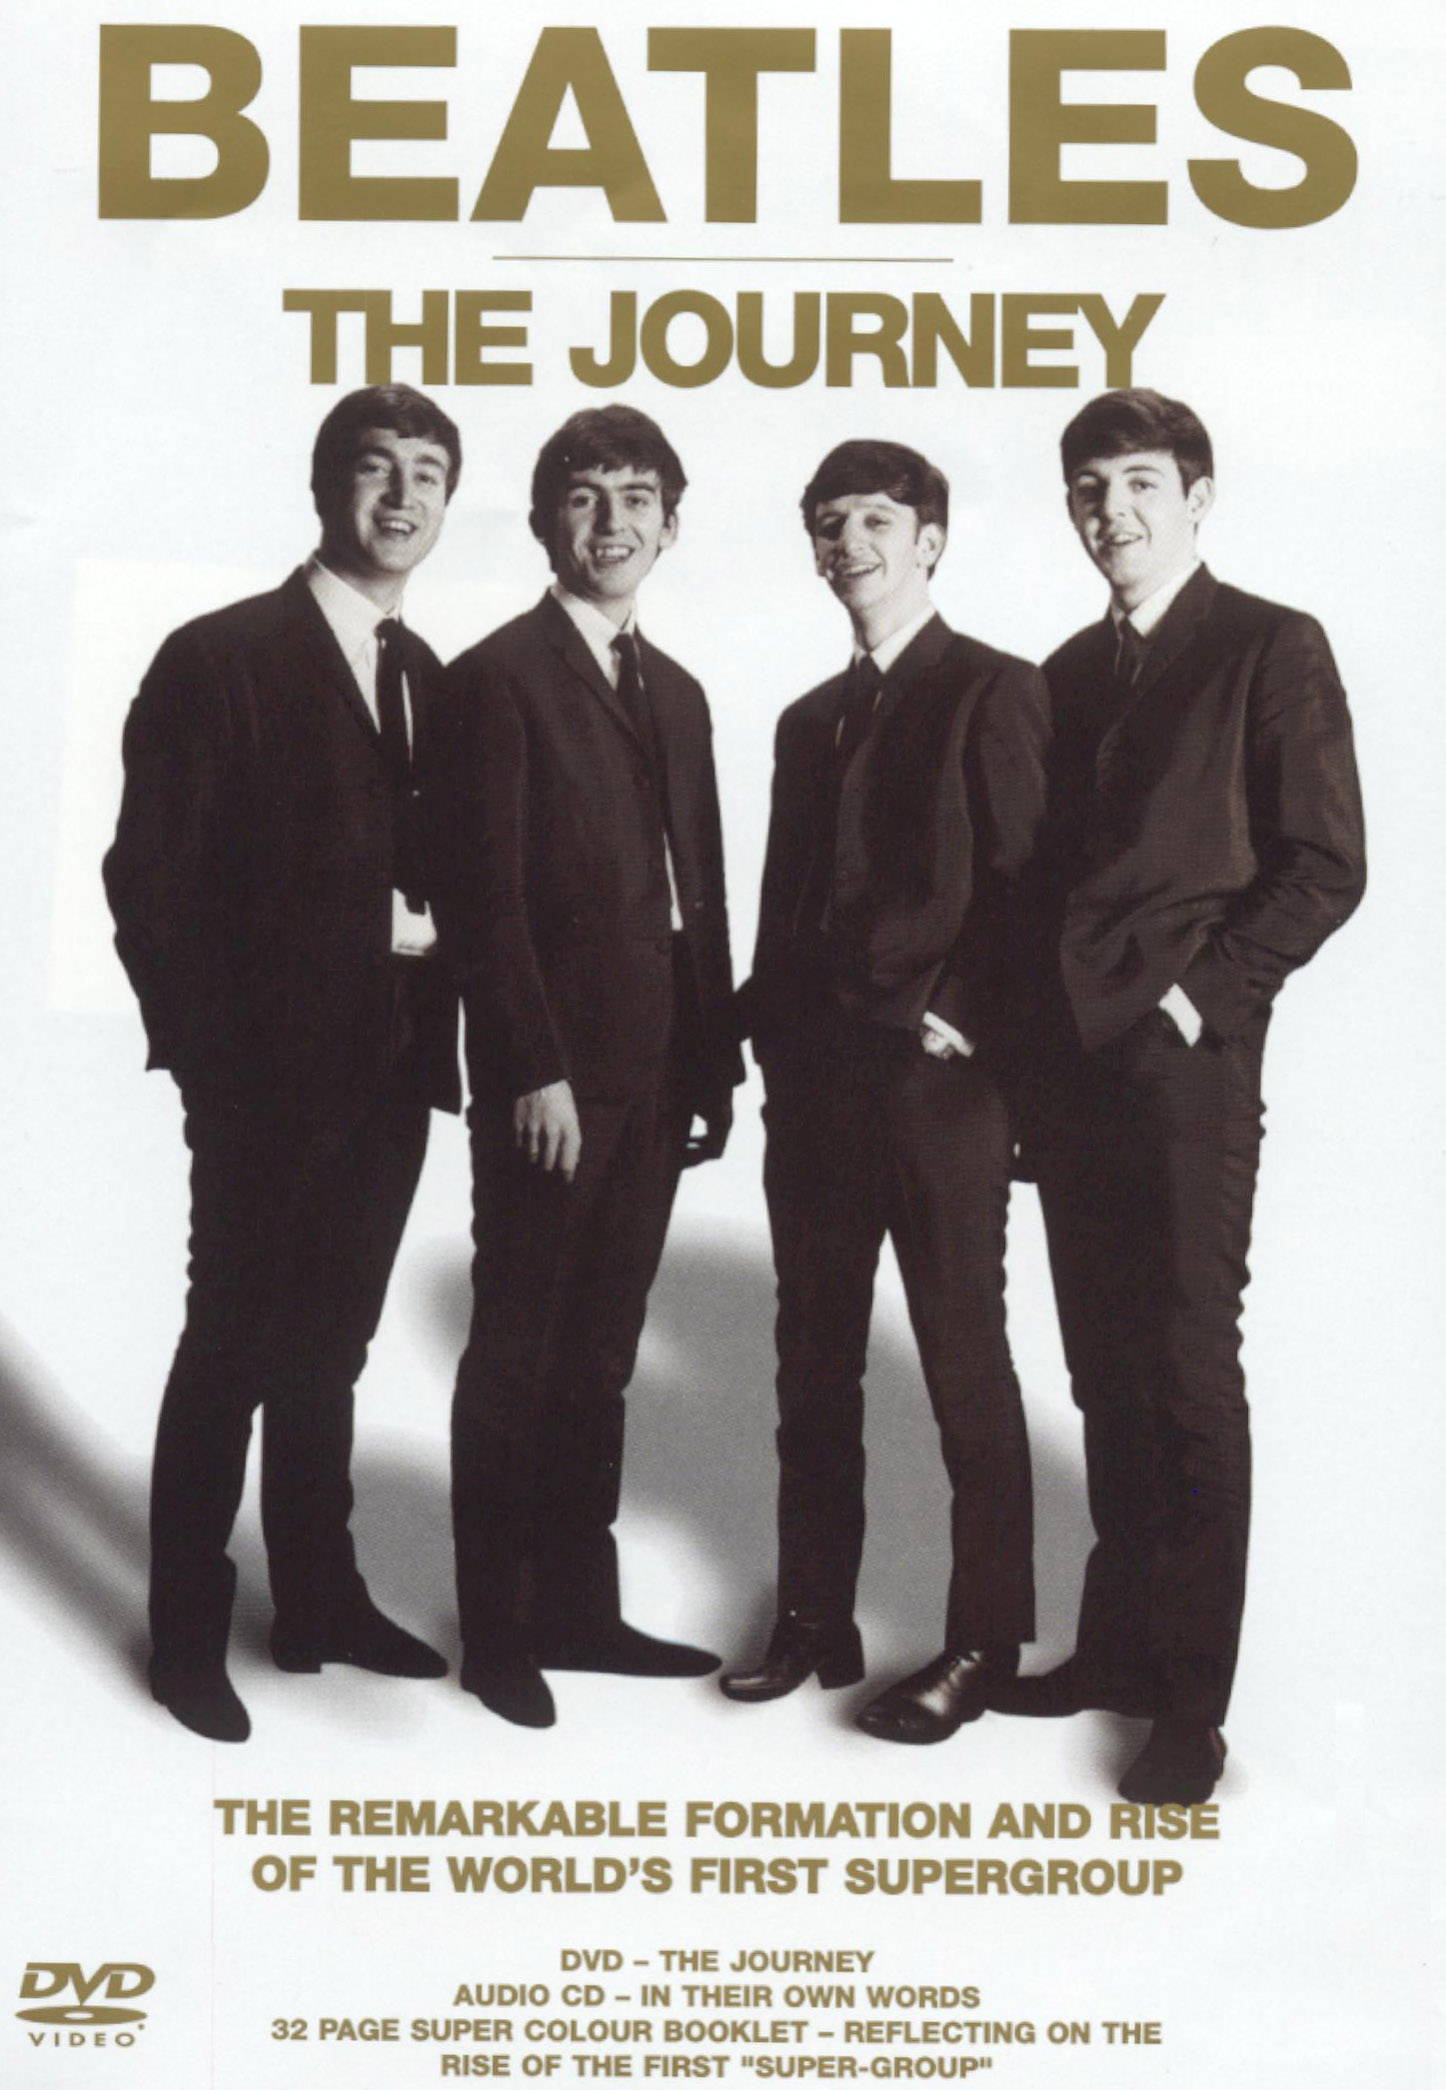 The Beatles: The Journey